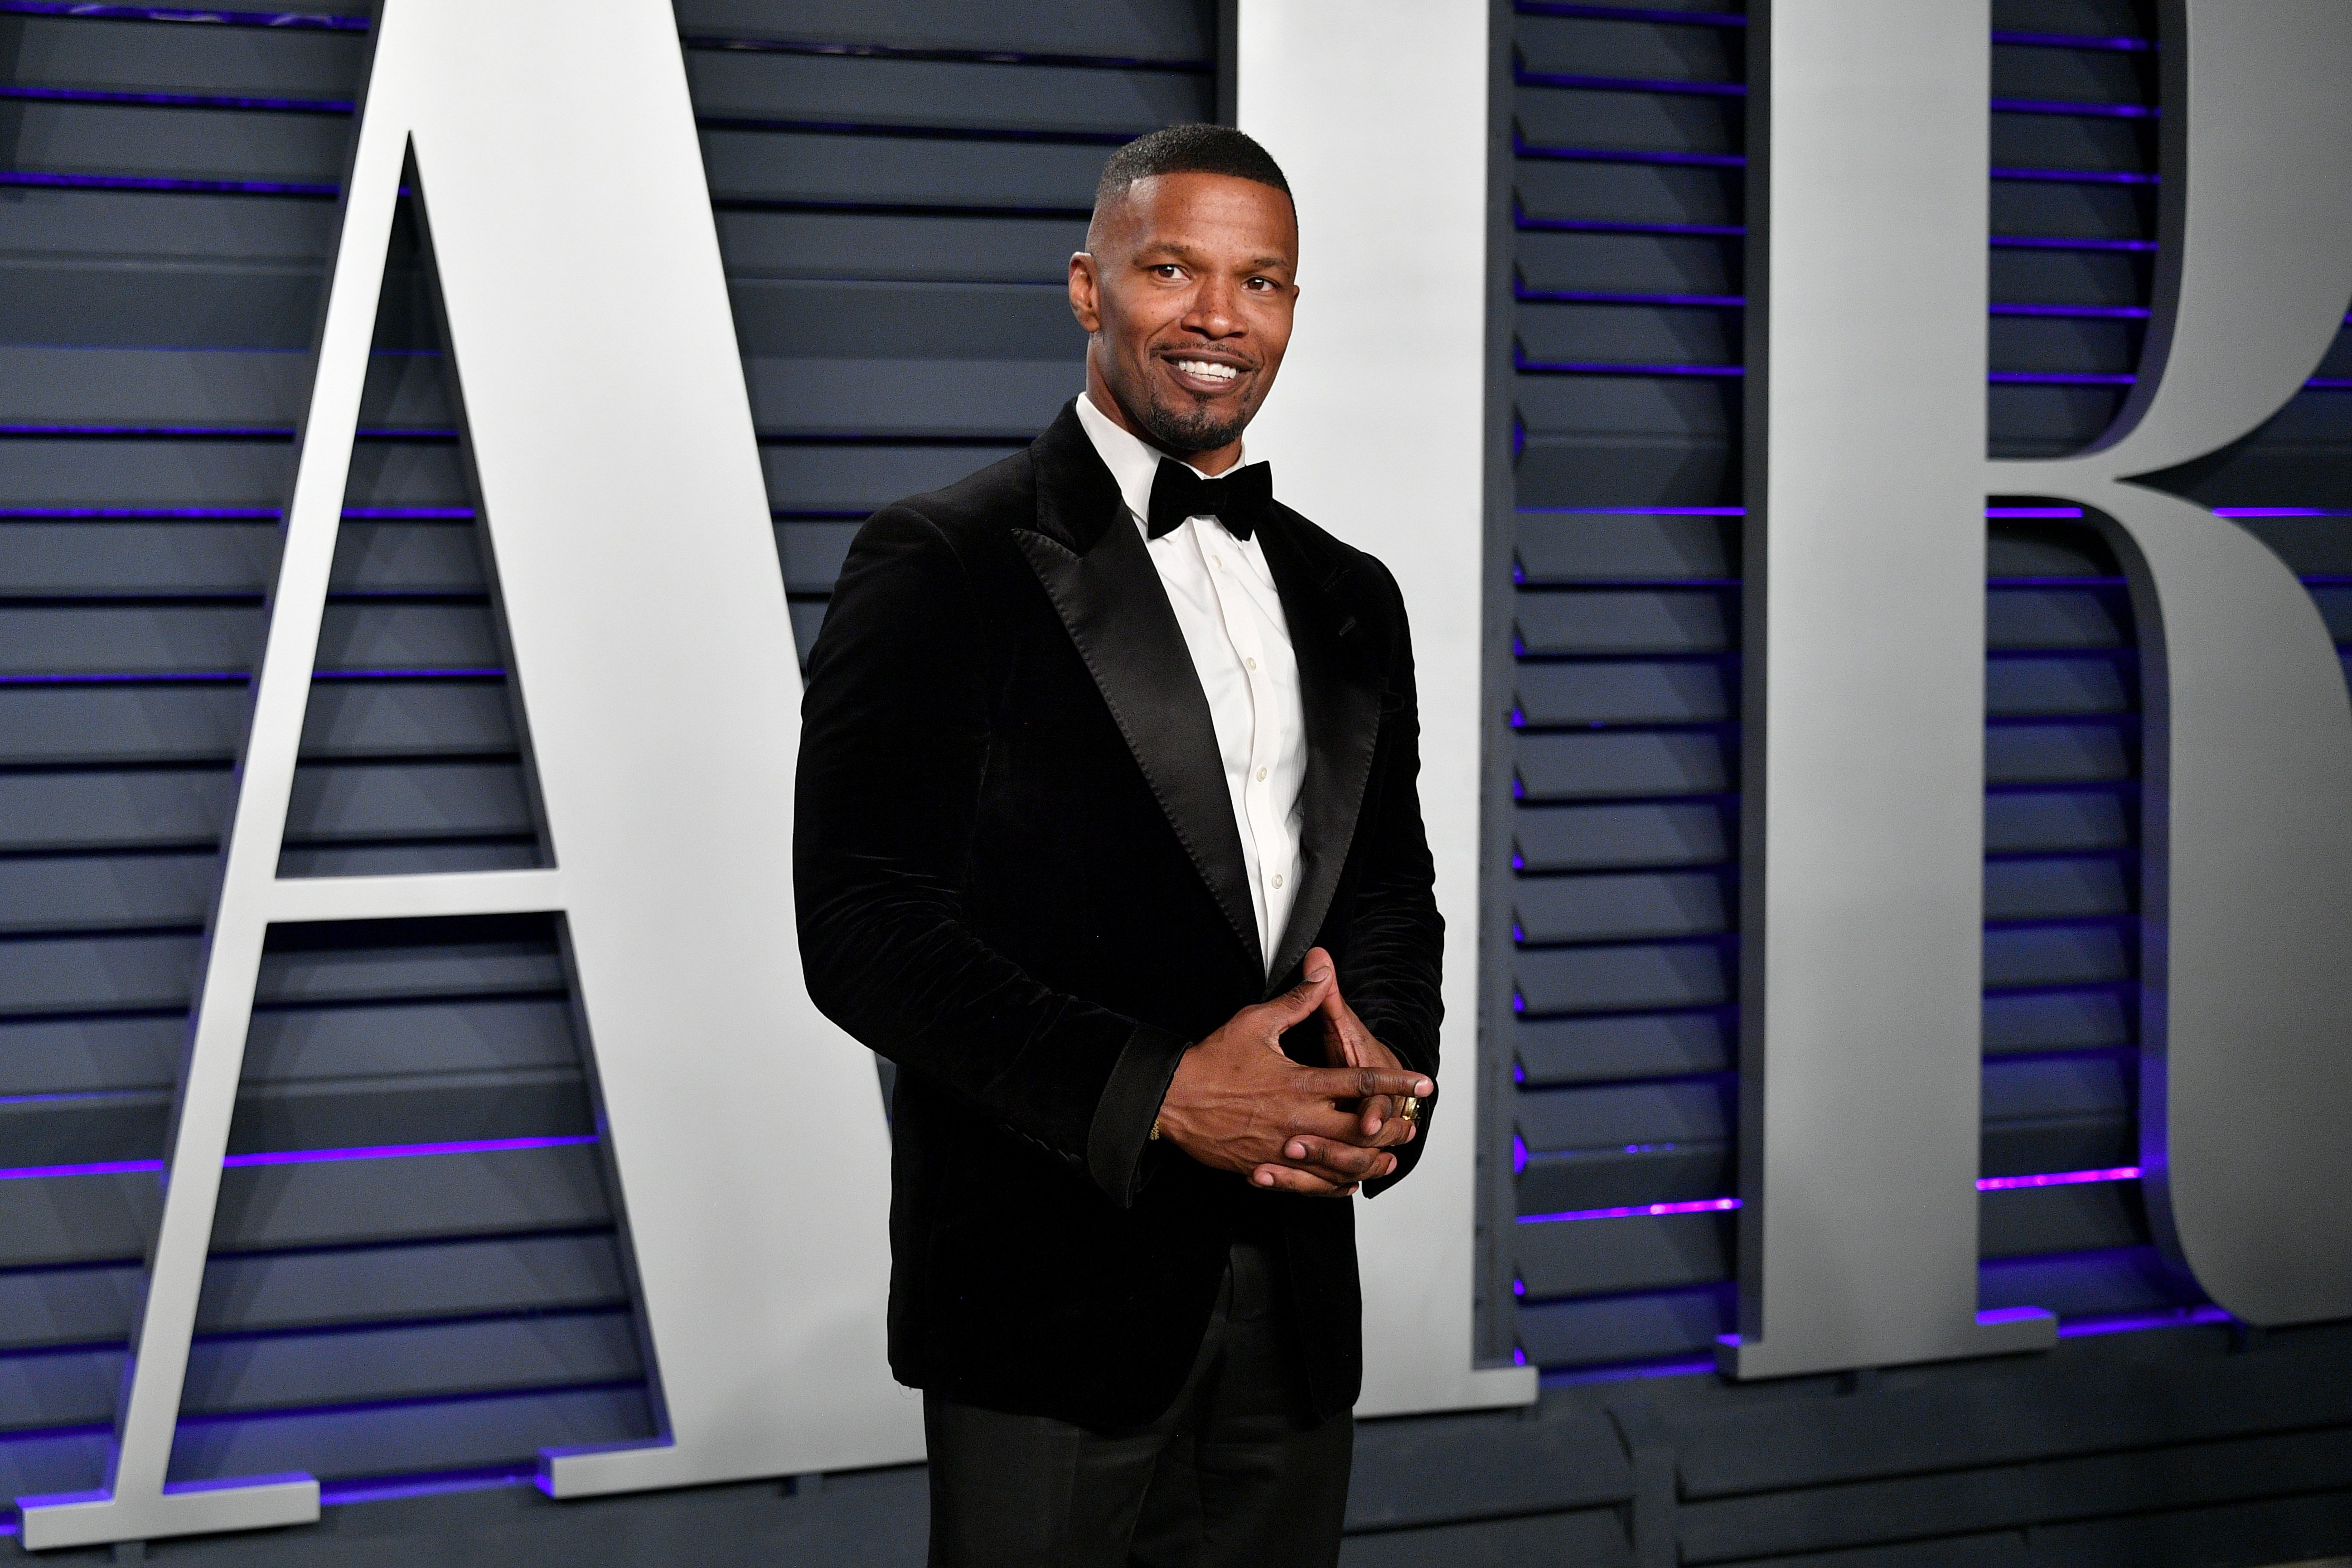 Jamie Foxx attends the 2019 Vanity Fair Oscar Party hosted by Radhika Jones at Wallis Annenberg Center for the Performing Arts on February 24, 2019 in Beverly Hills, California. | Photo: GettyImagees